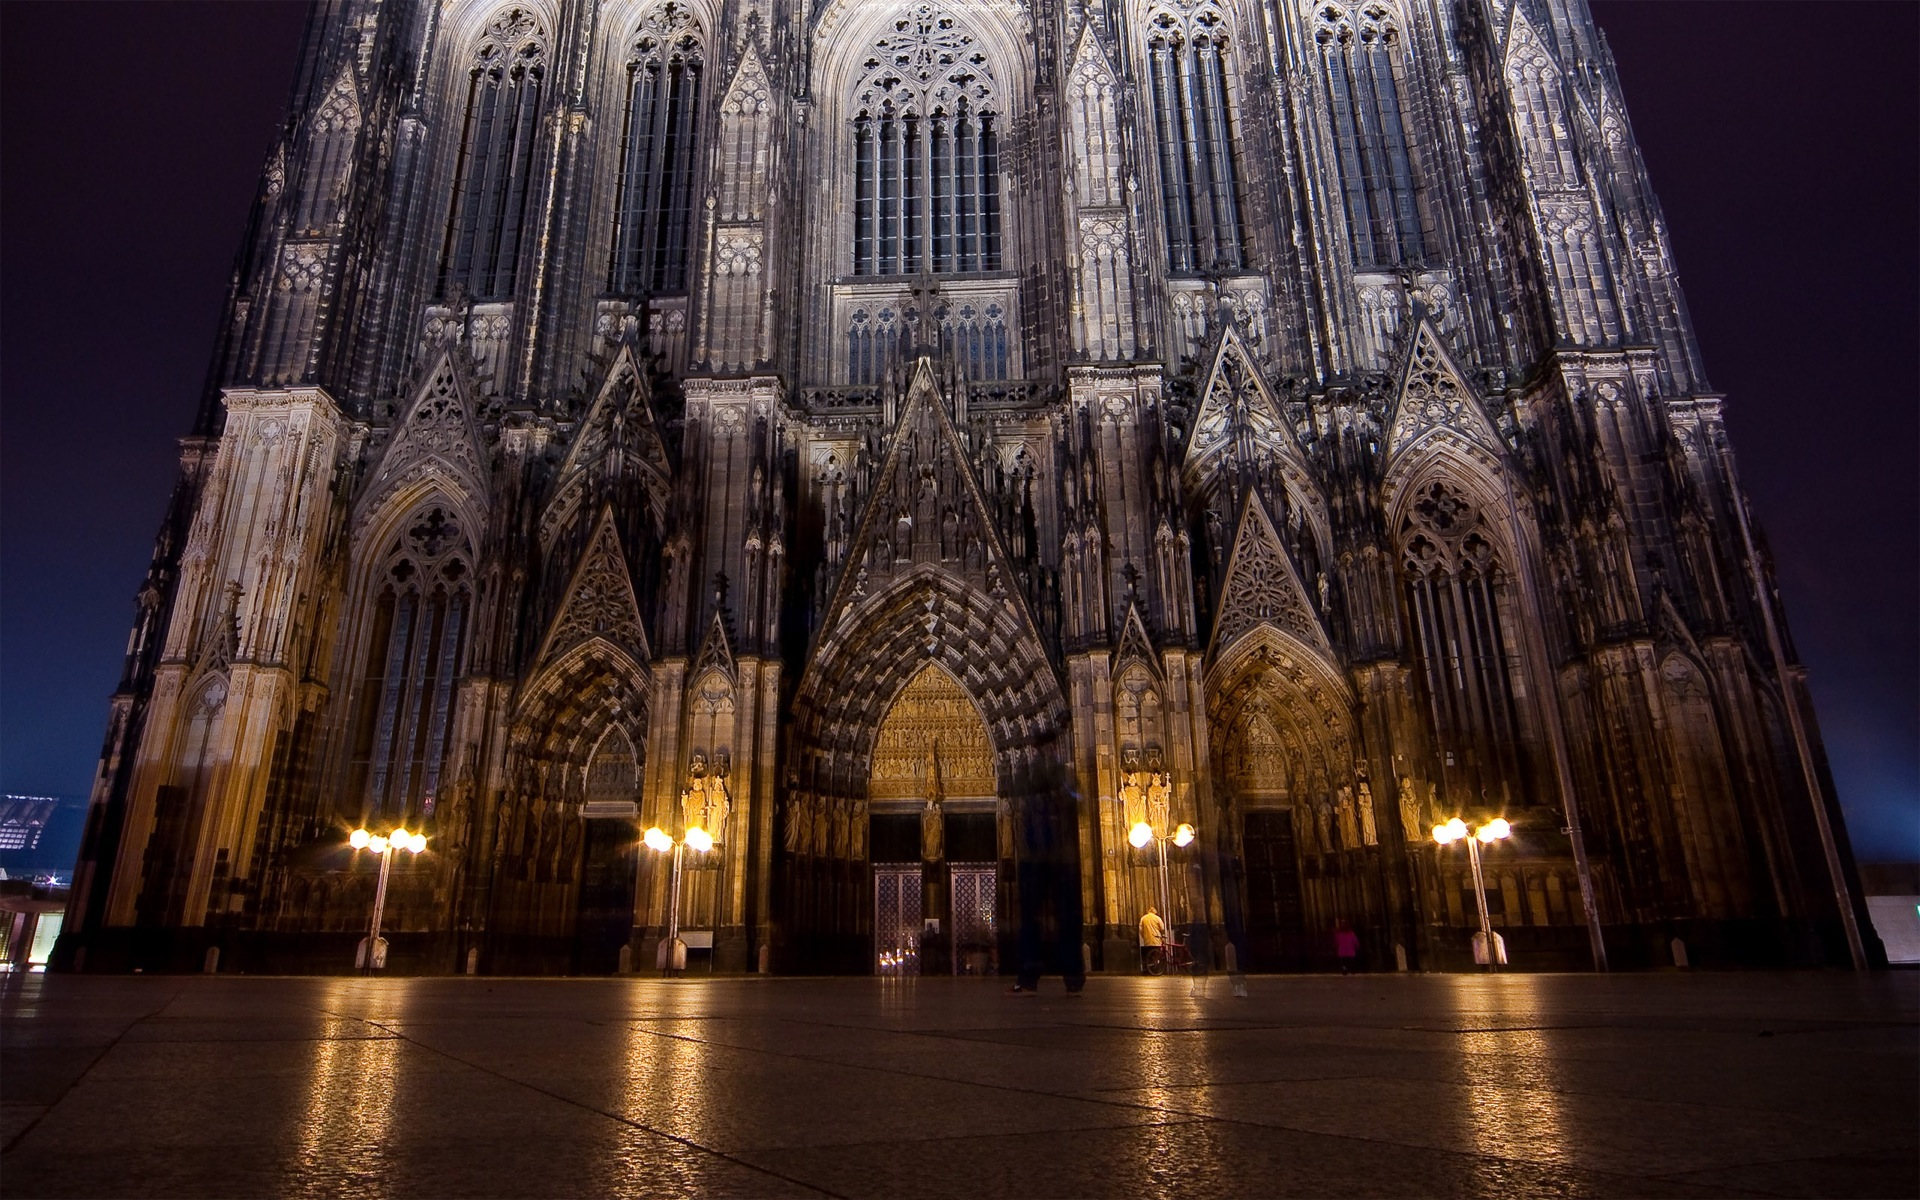 Cologne Cathedral HD Wallpaper Background Image 1920x1200 ID 1920x1200